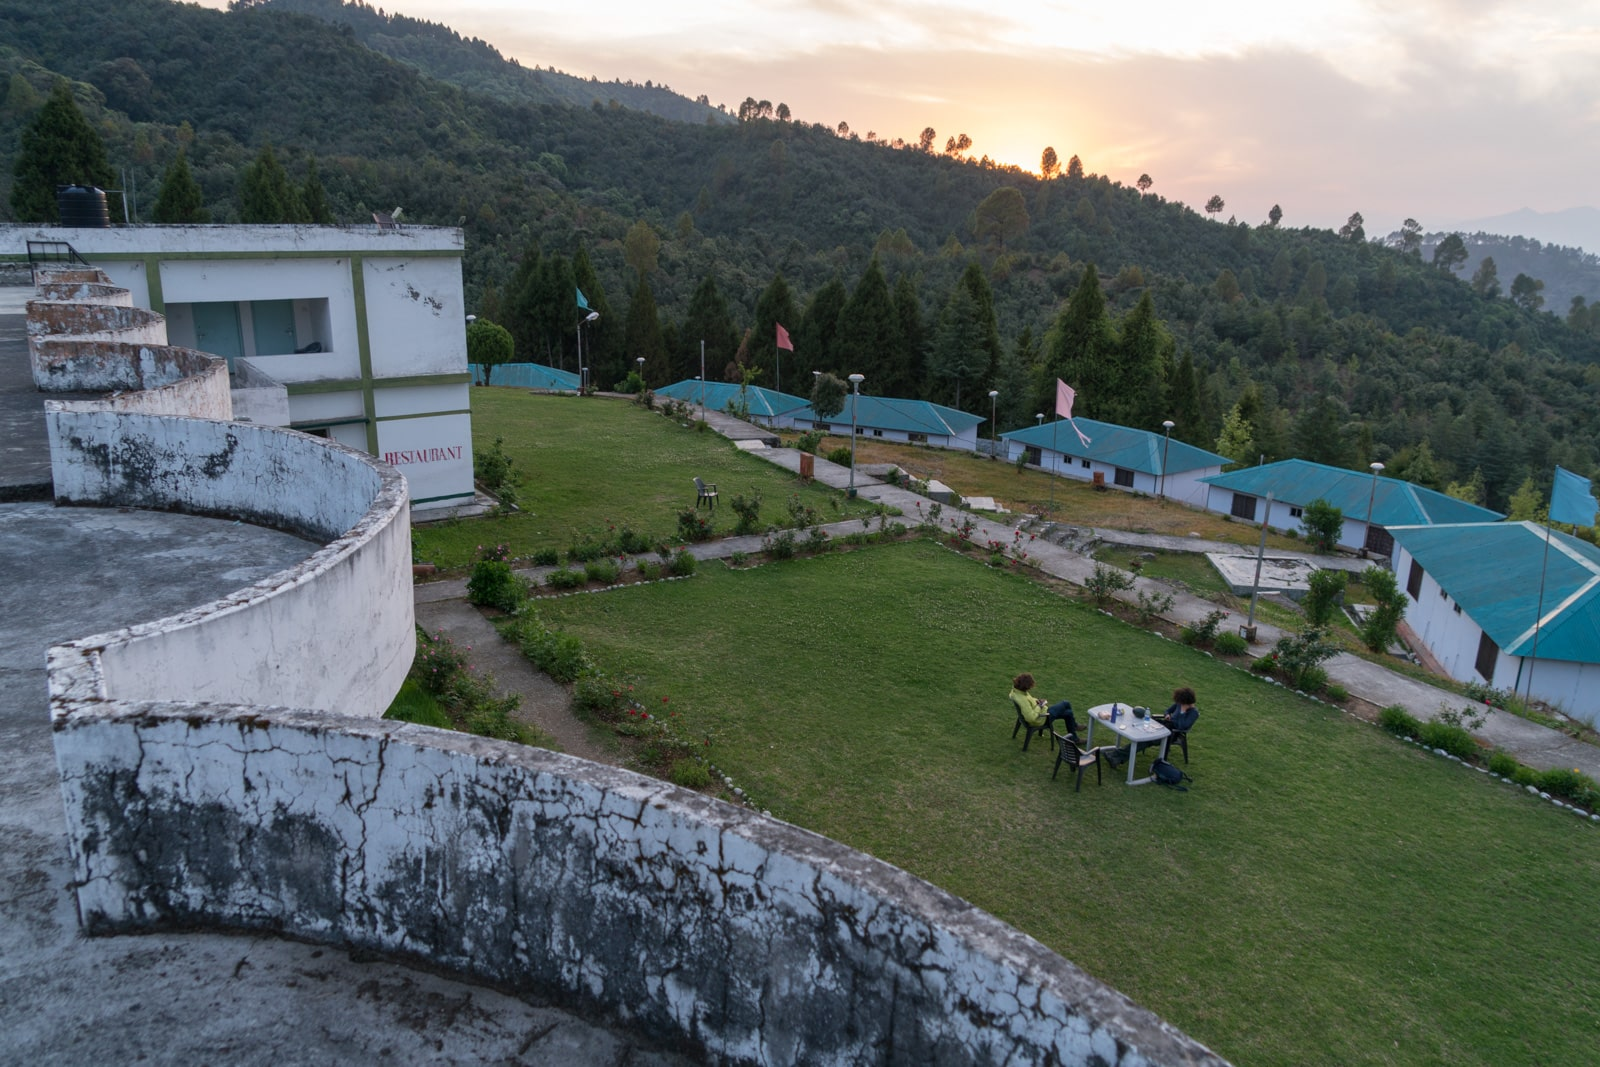 How to reach Khirsu from Rishikesh - Rooftop view of the GVMN Guest House - Lost With Purpose travel blog